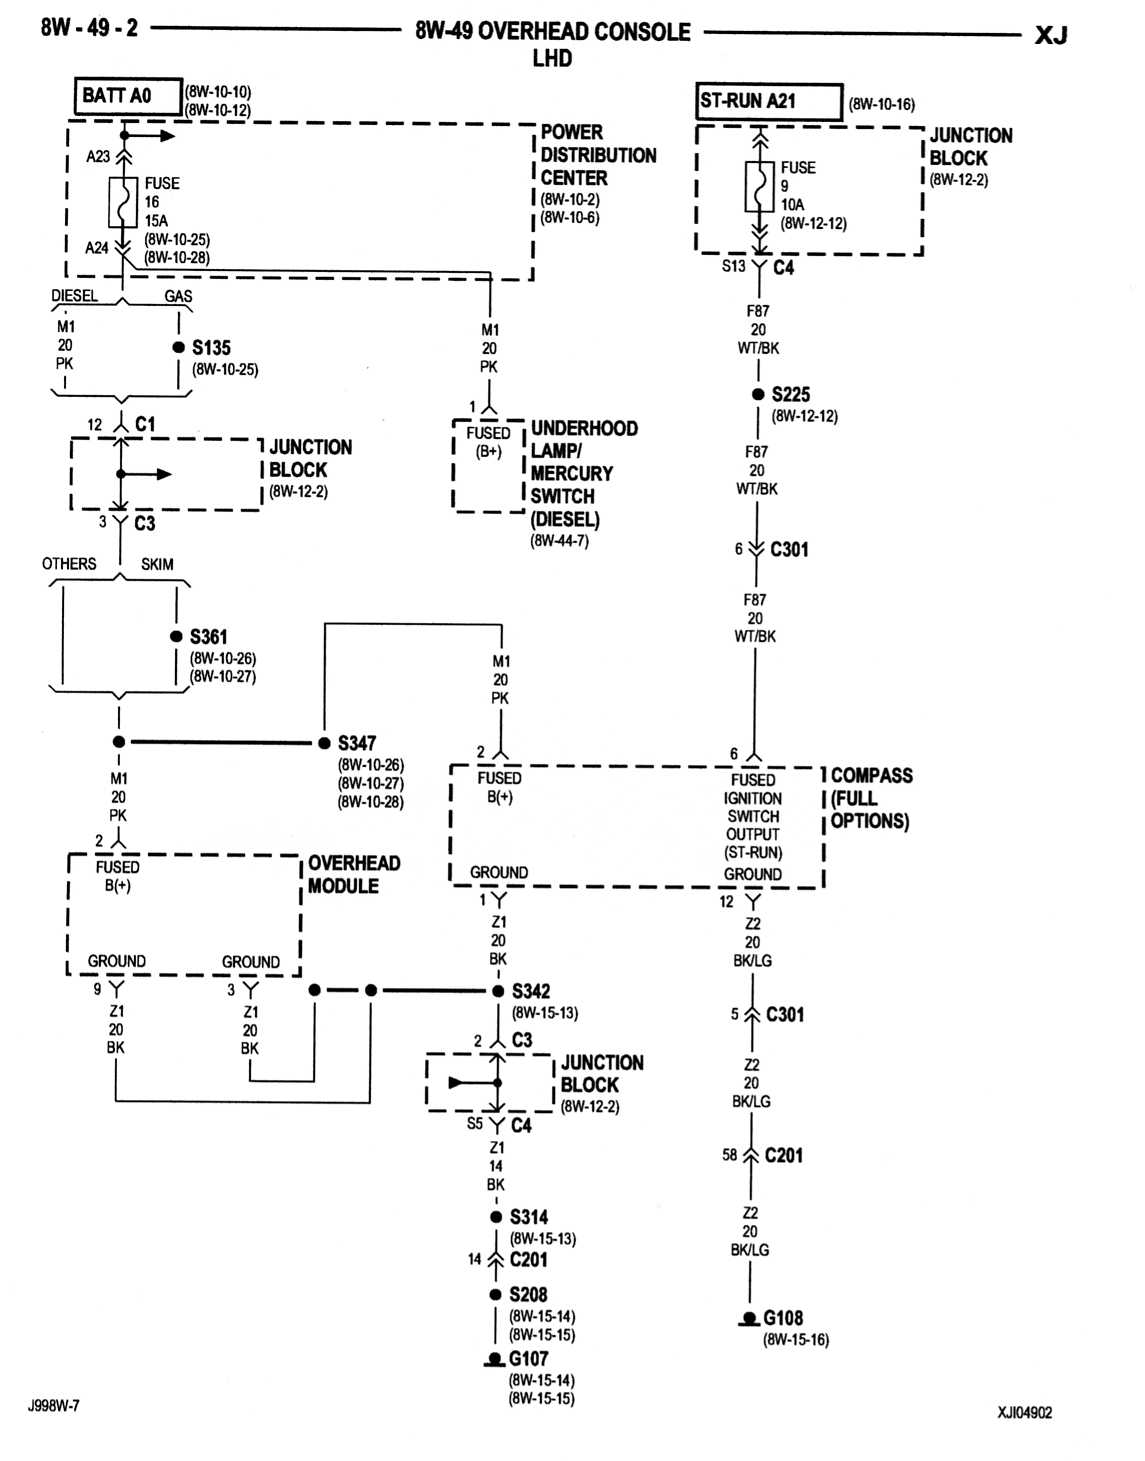 328400d1501259387 keyless entry wiring anyone know color code 99overheadmoduleconsolediagram1?resize\\\\\\=665%2C849\\\\\\&ssl\\\\\\=1 100 [ notifier intelligent control panel slc wiring manual 7 Layer OSI Model Diagram at edmiracle.co